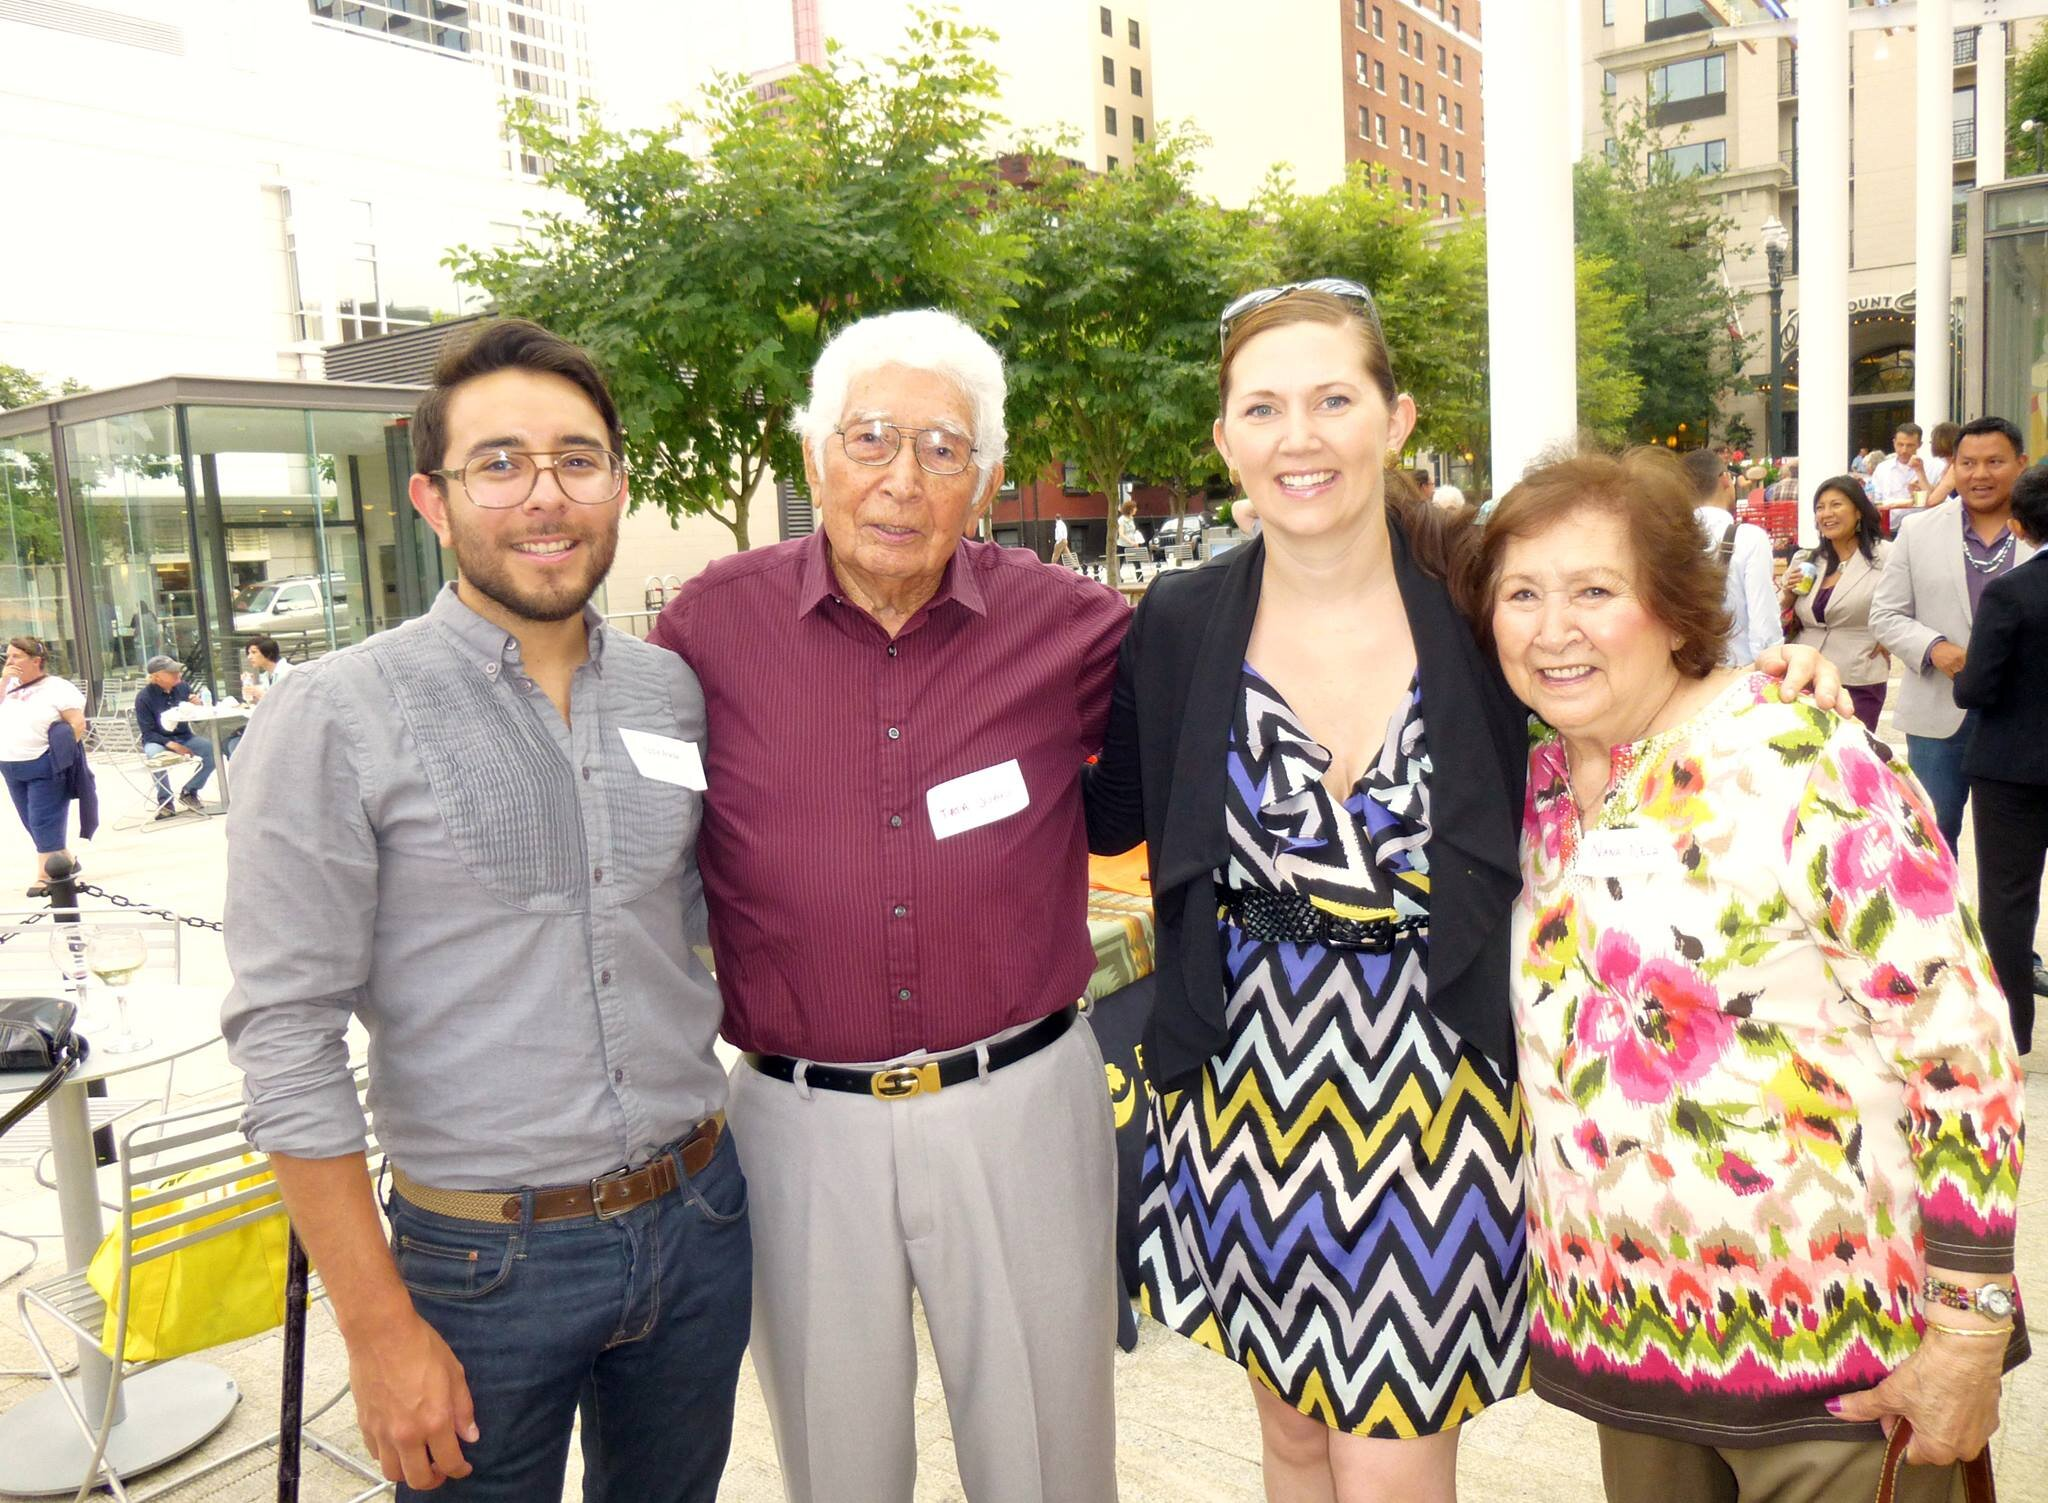 Eddie, former NWHF President Nichole June Maher, and Eddie's Nana and Tata at Native Professionals Night.